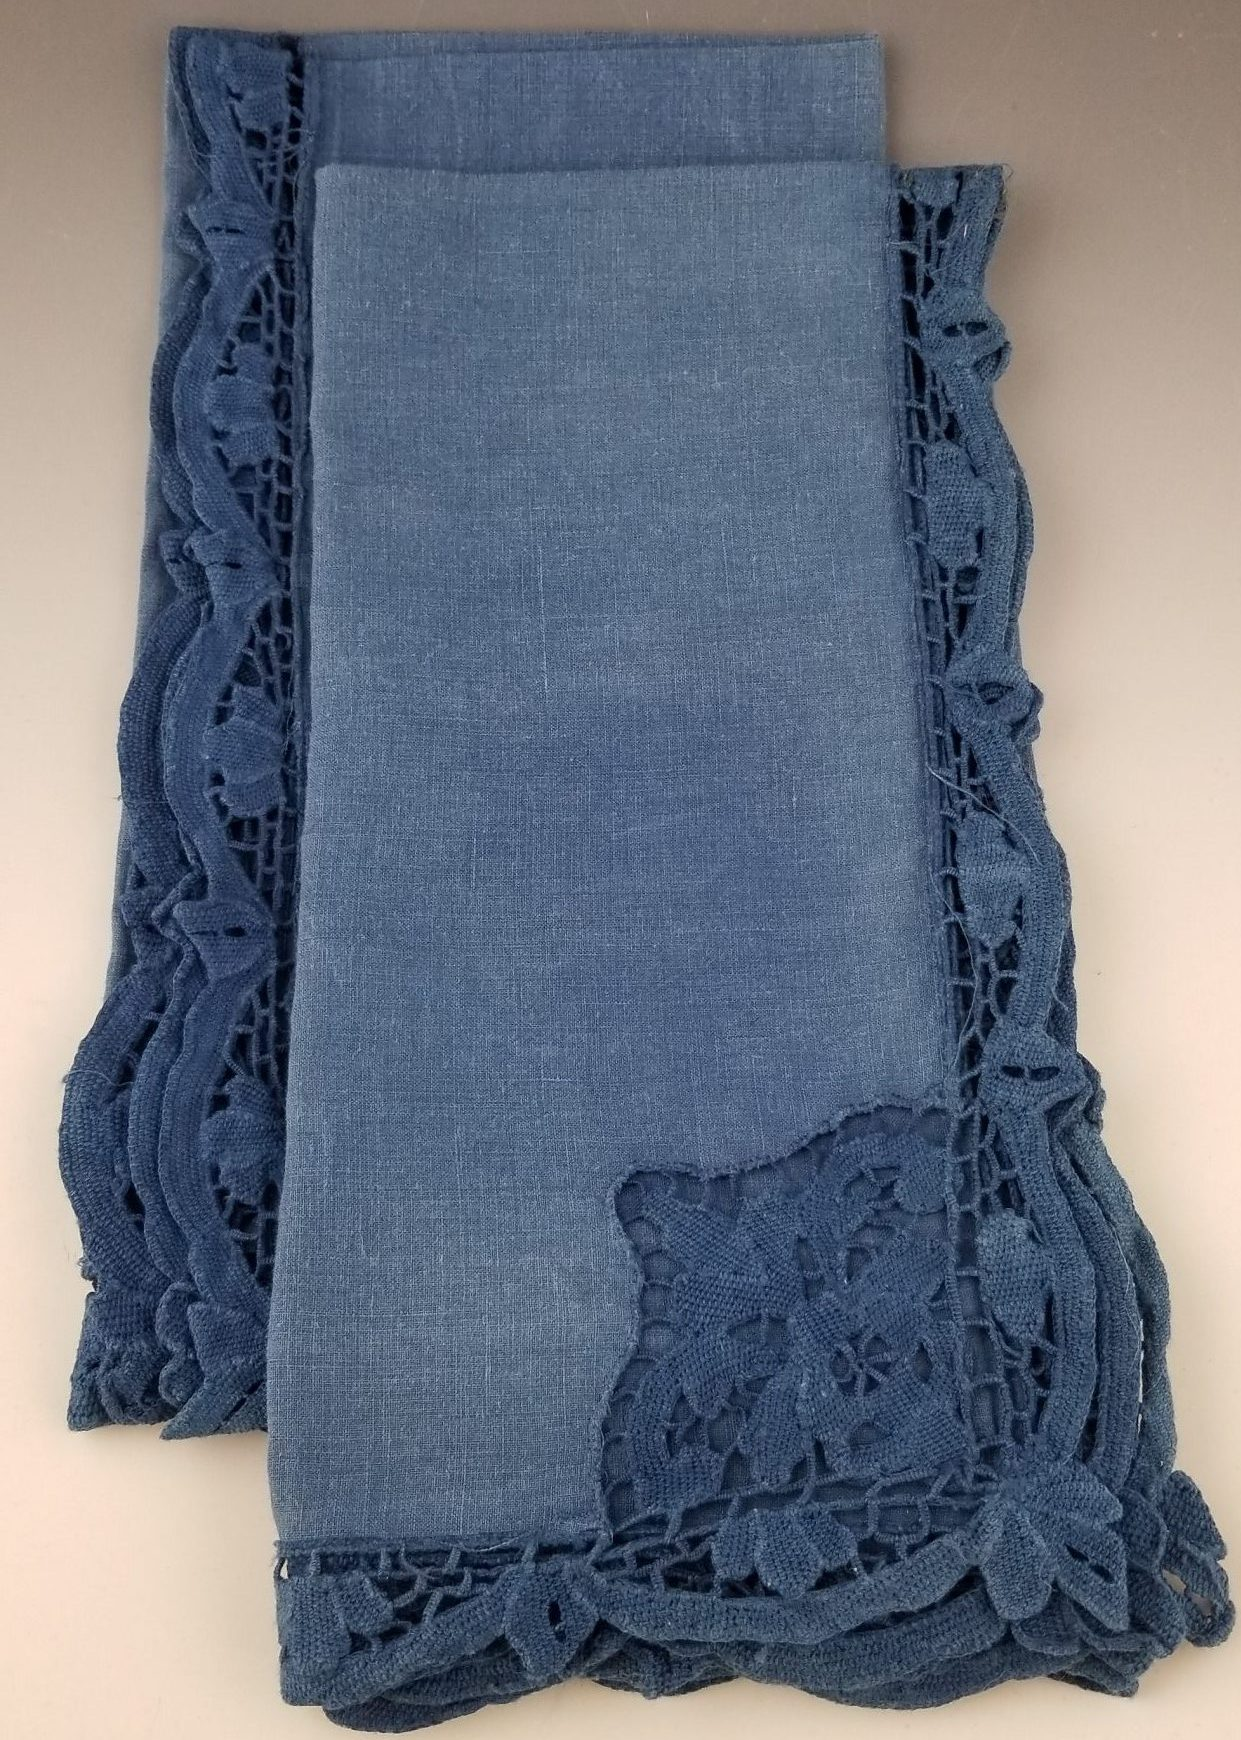 Indigo Dyed Repurposed Linen napkins pair